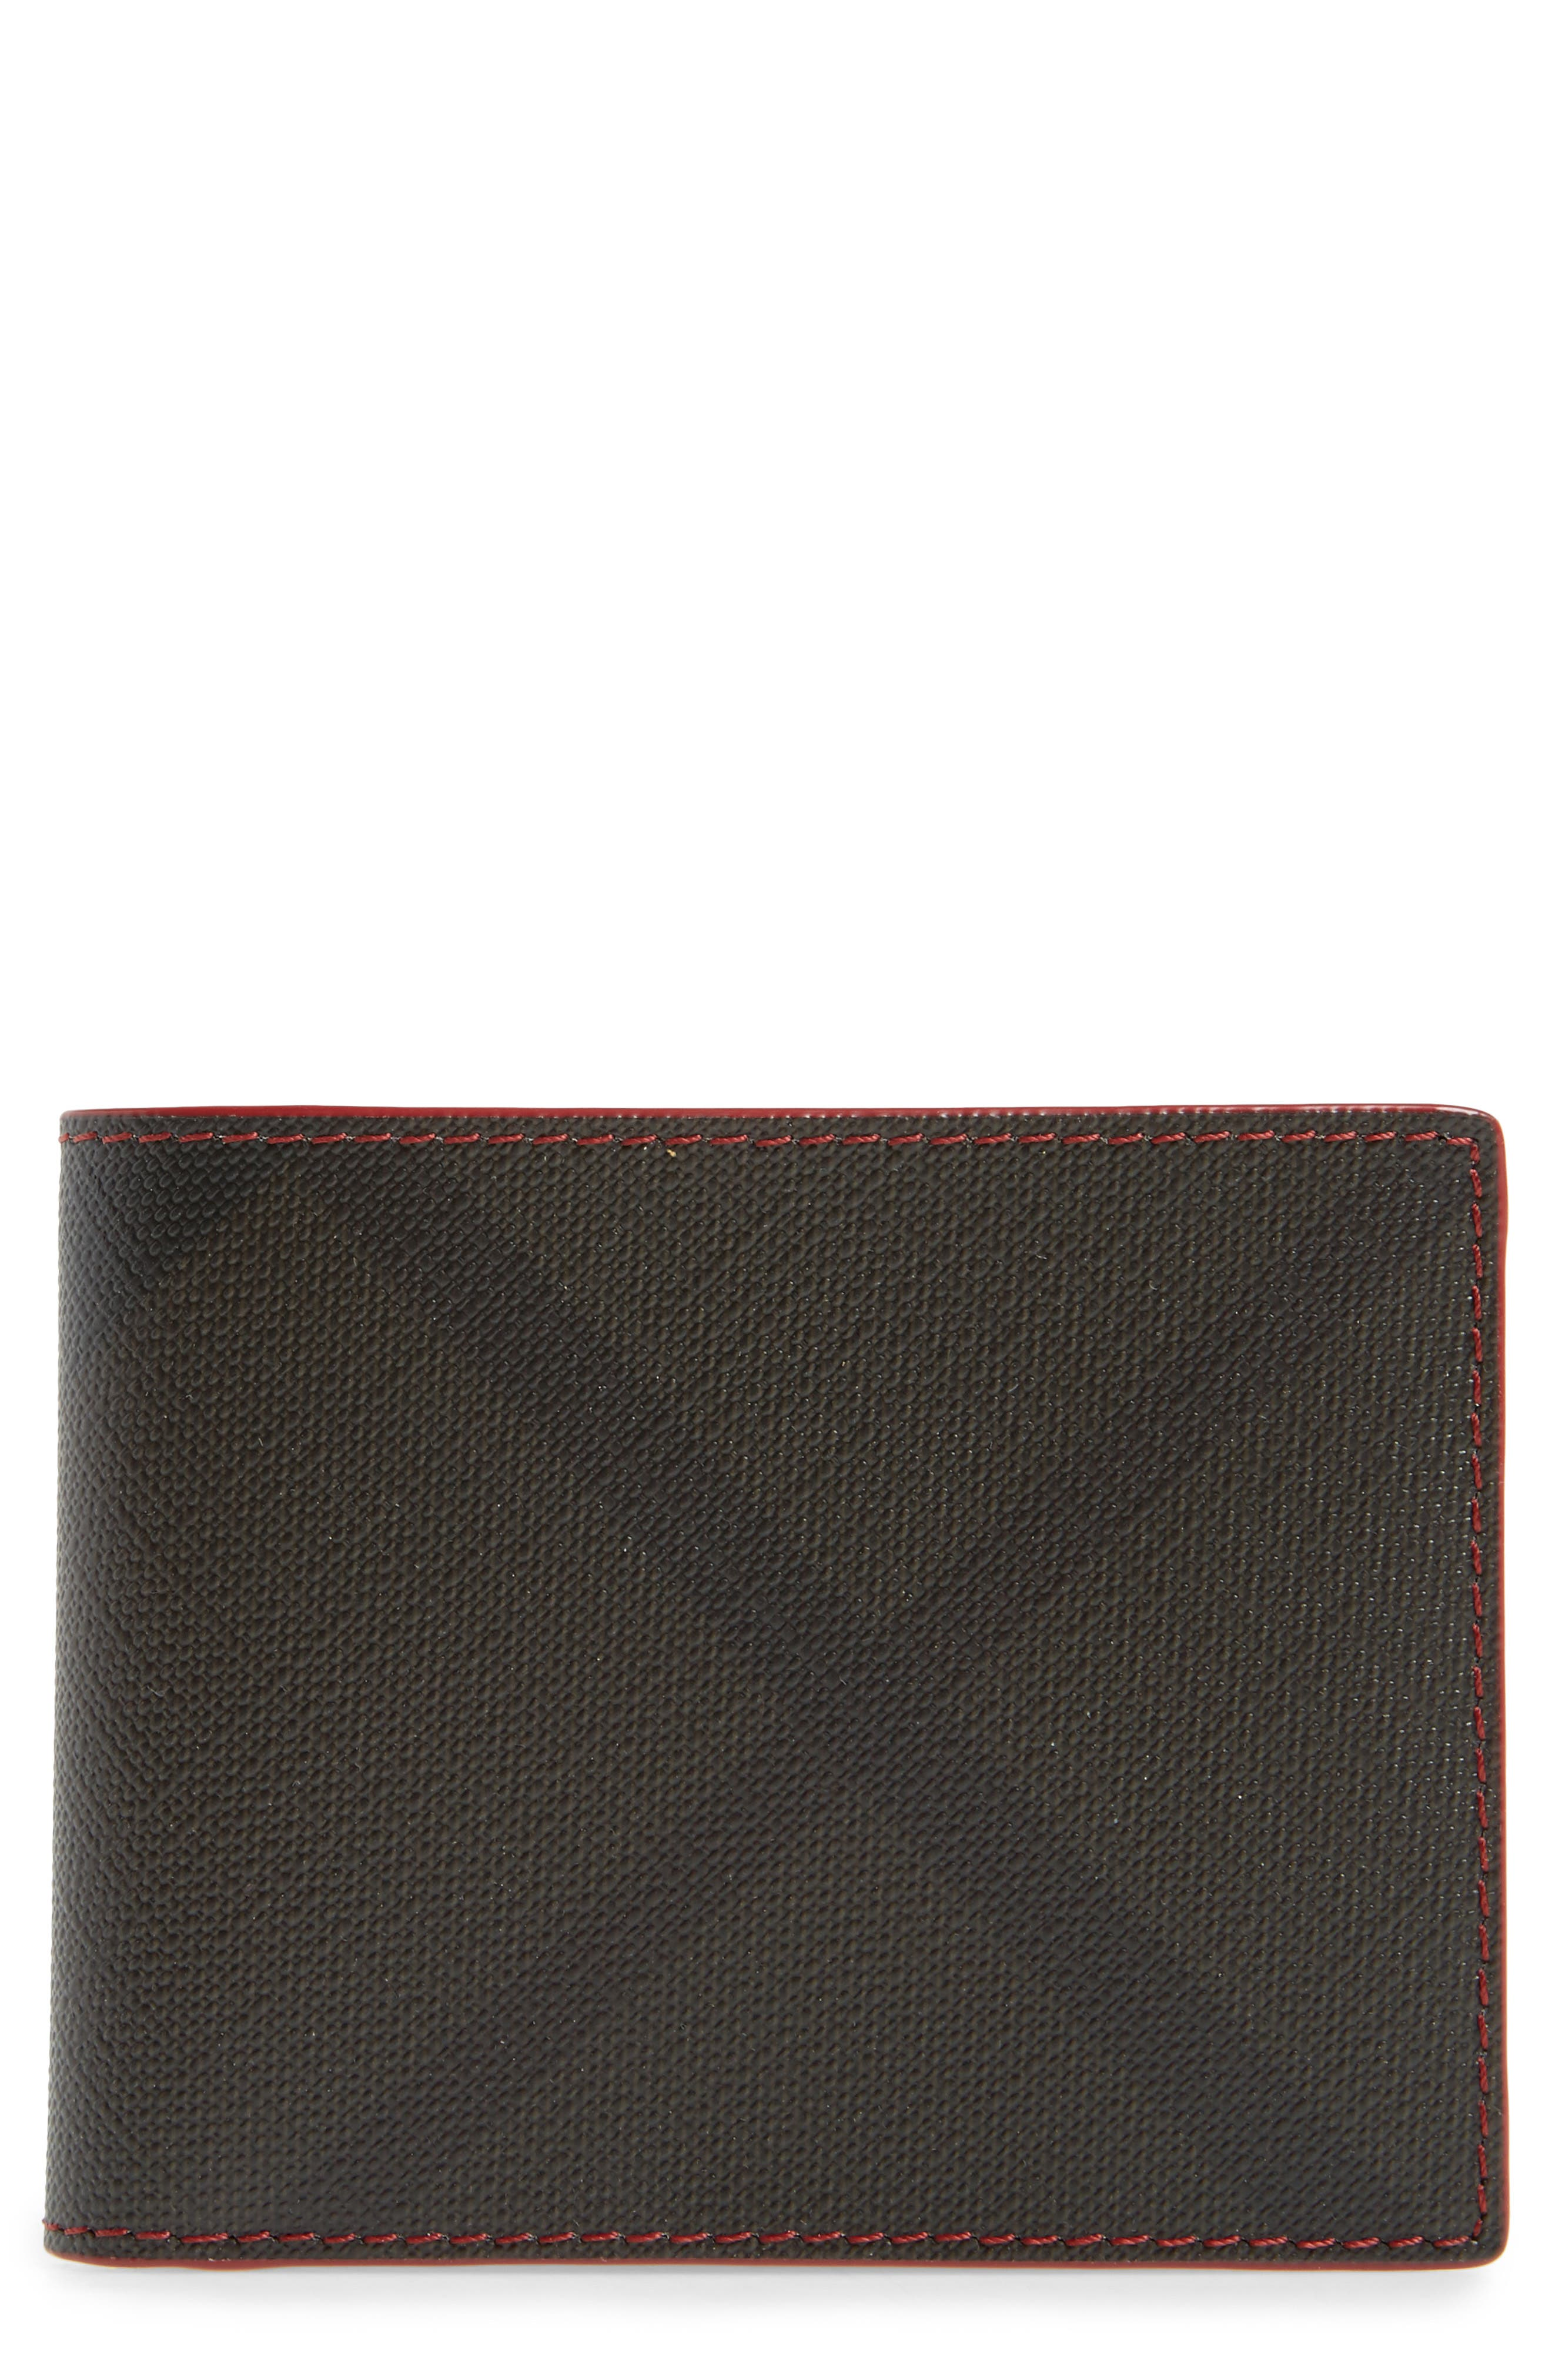 Alternate Image 1 Selected - Burberry Check Faux Leather Wallet